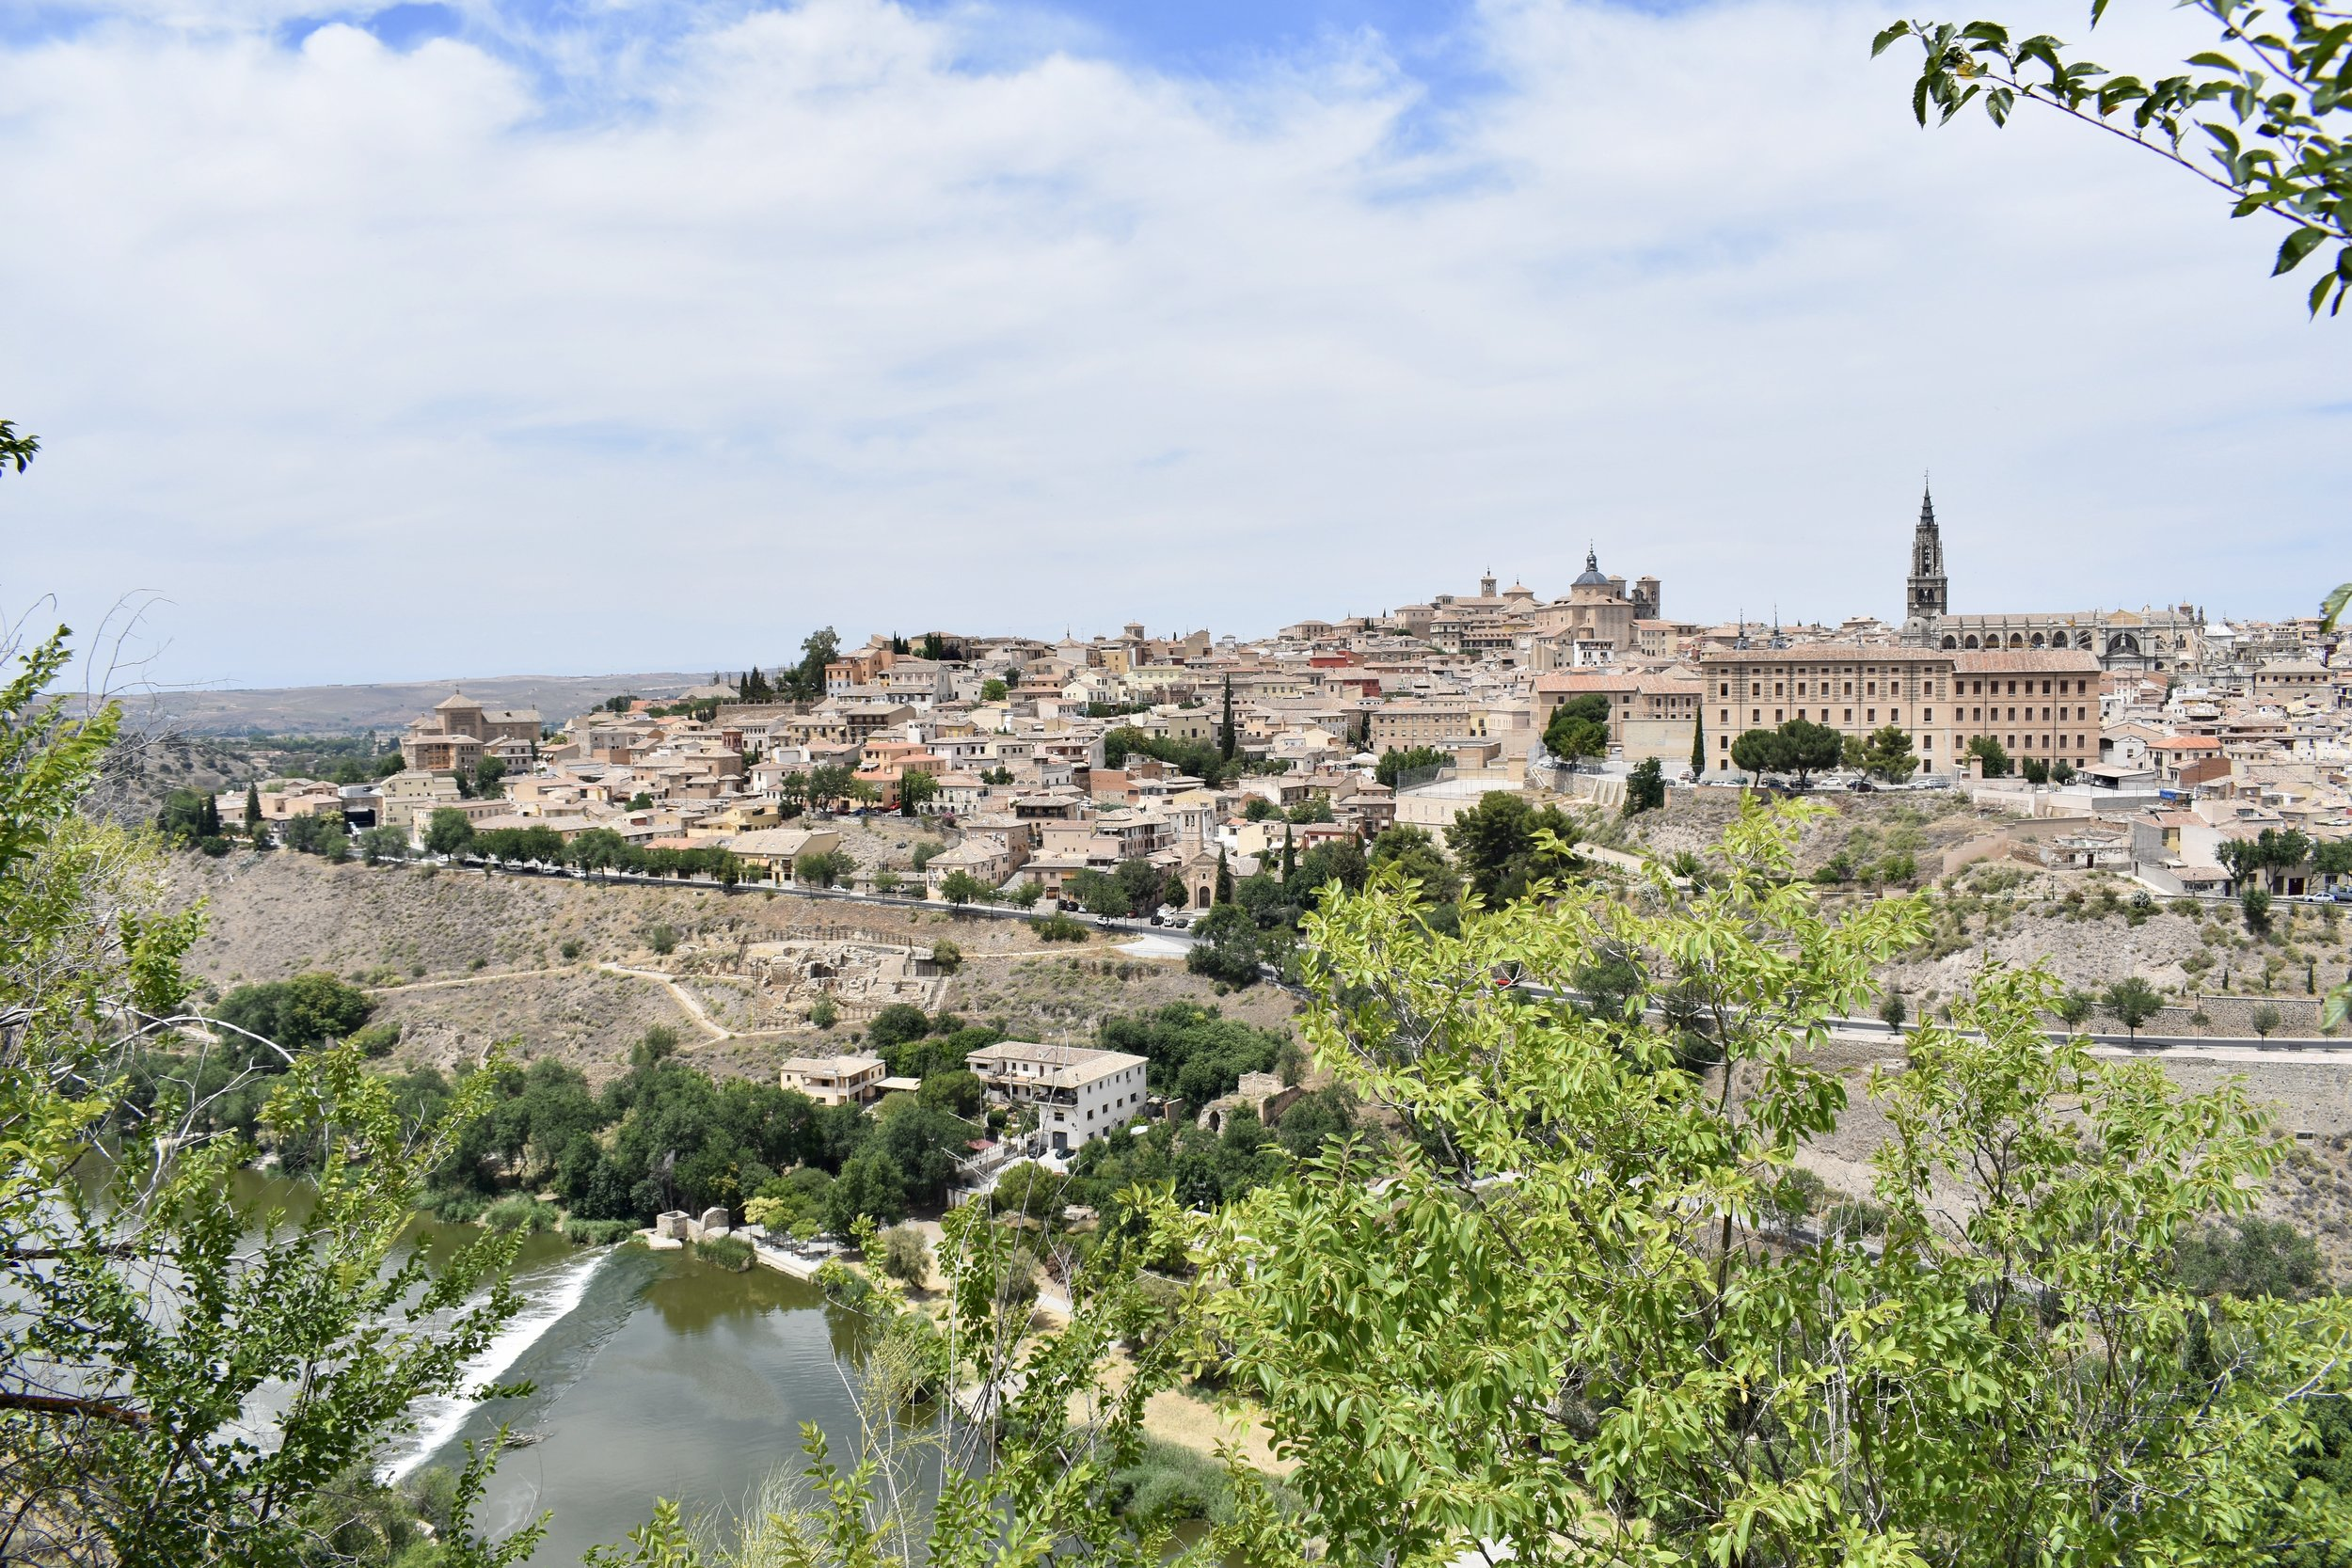 Fellows enjoy a beautiful view of El Casco of Toledo from the Mirador del Valle lookout, just an hour from Madrid.